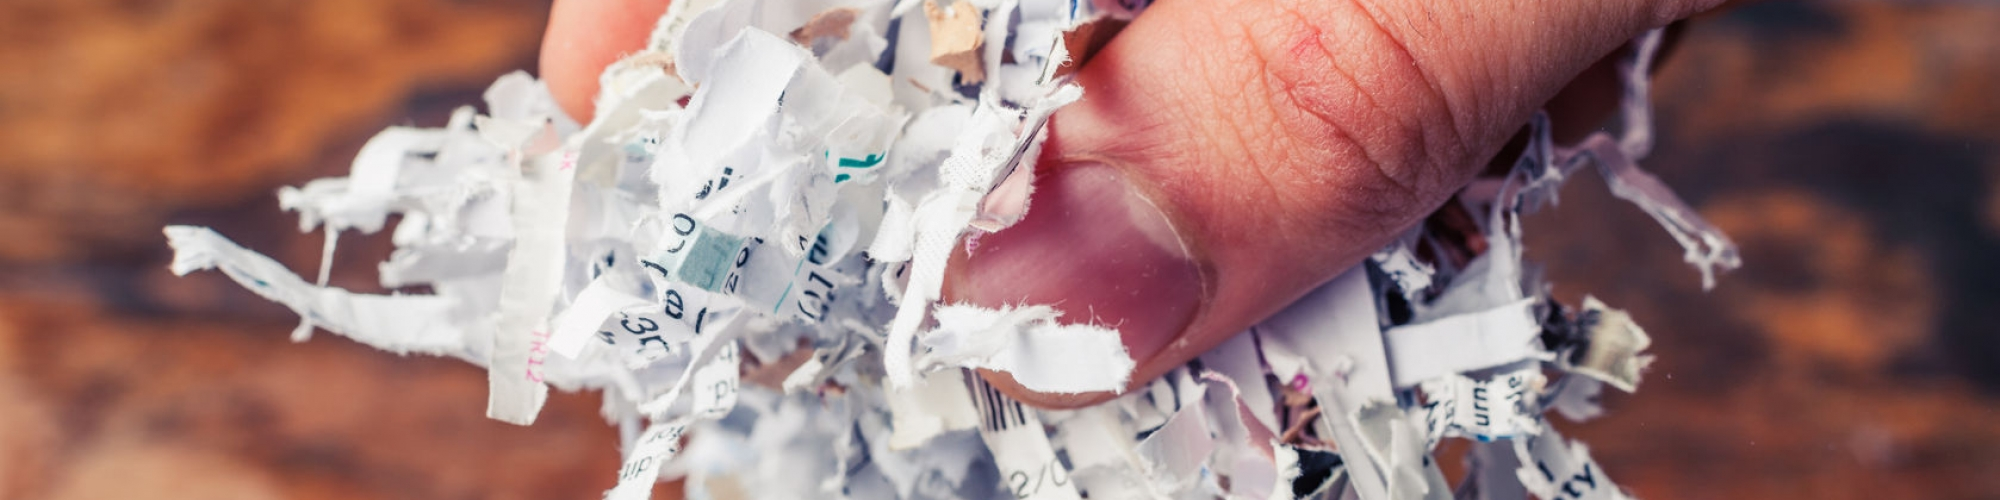 Hand is holding a bunch of shredded paper